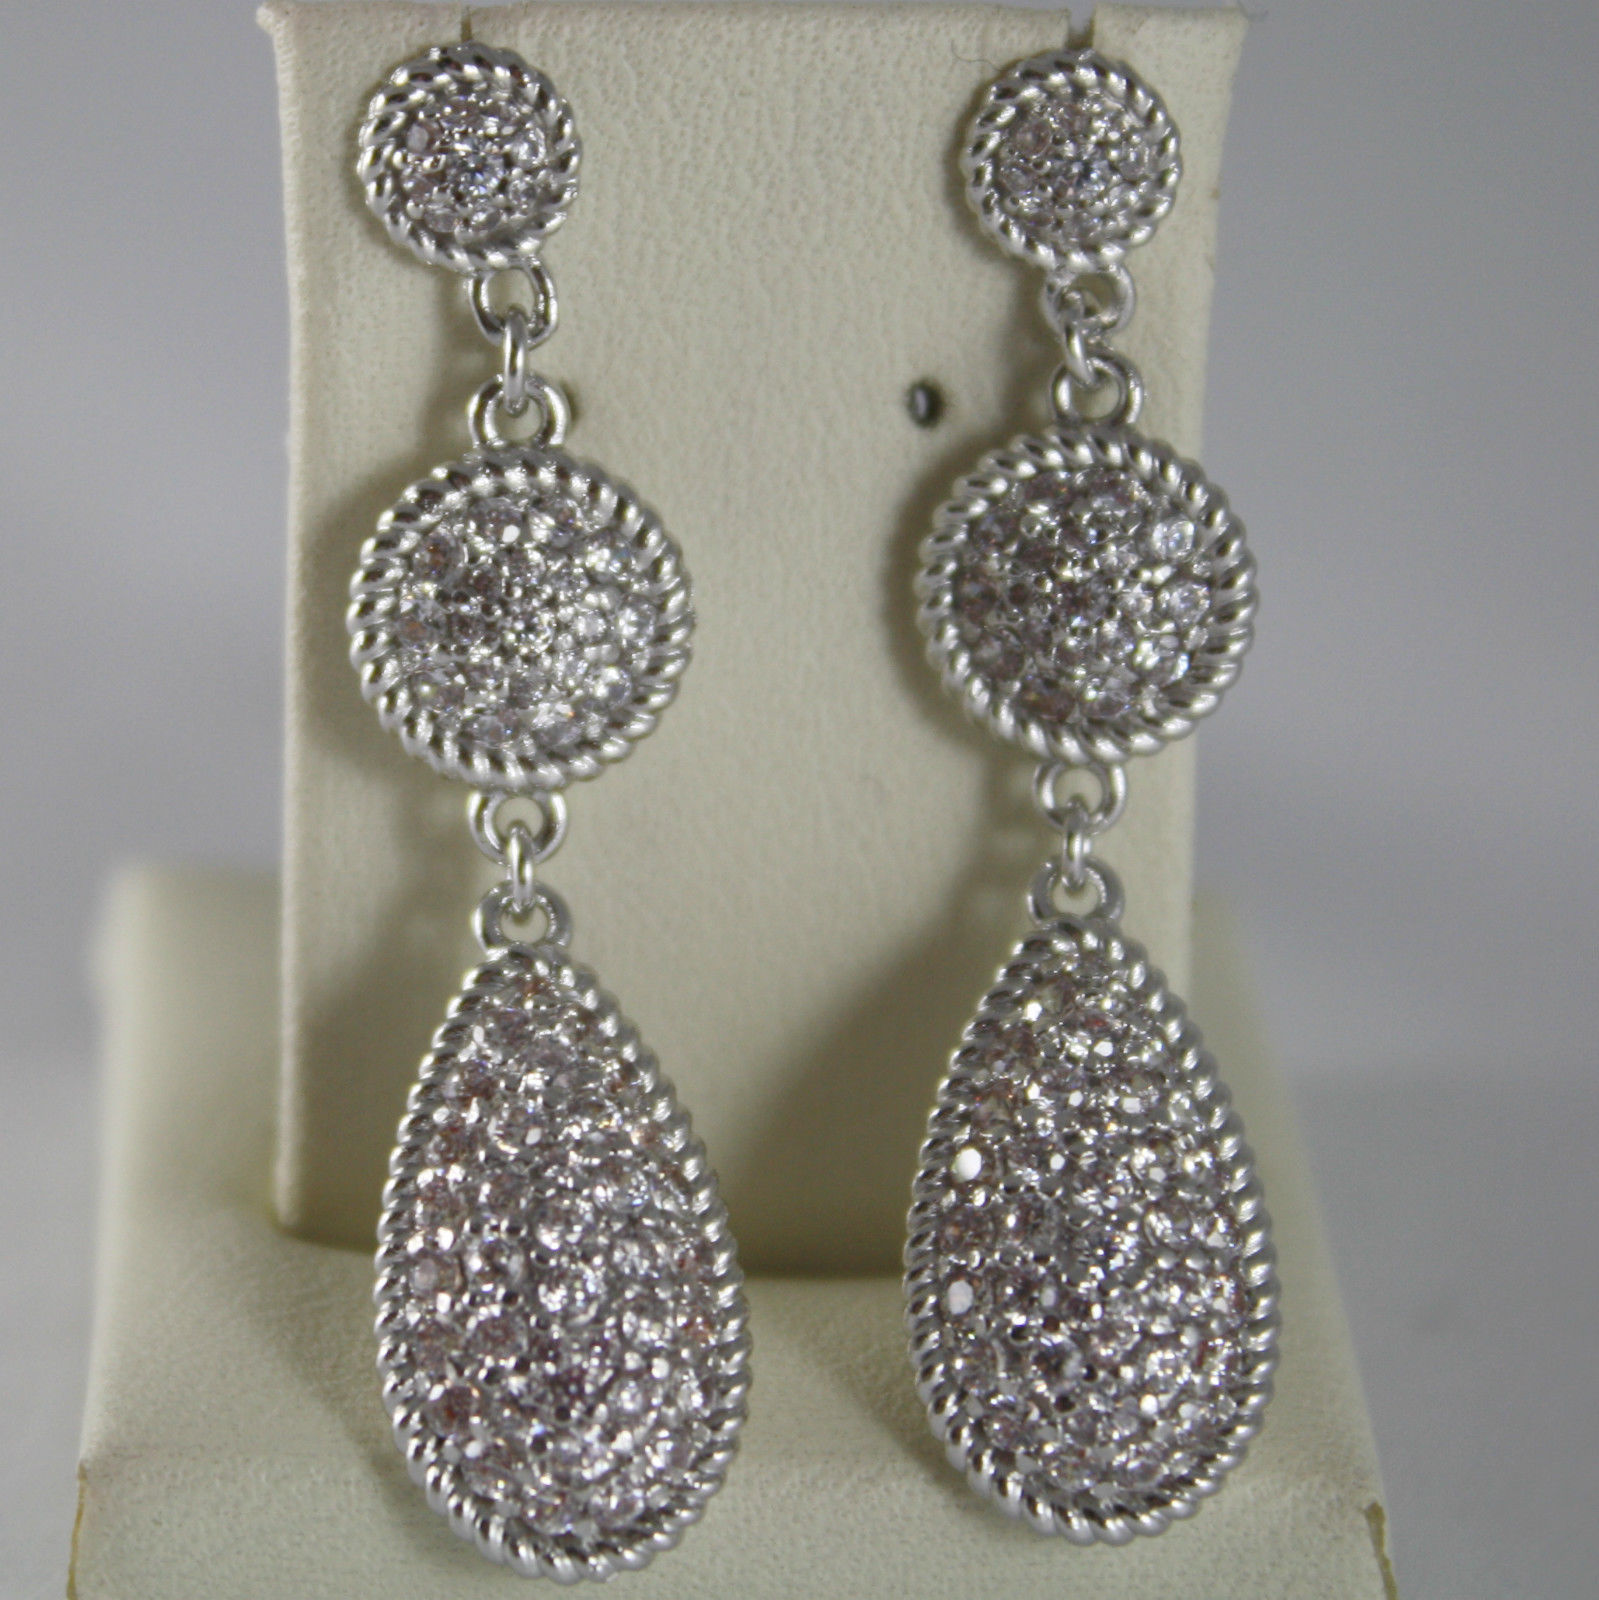 RHODIUM BRONZE EARRINGS, DROP CUBIC ZIRCONIA B14OBB20, BY REBECCA MADE IN ITALY